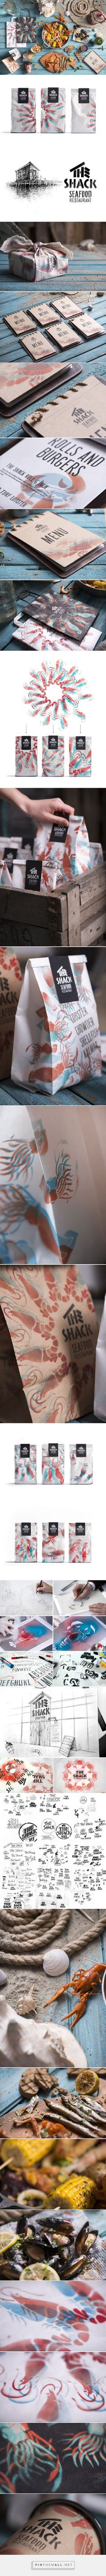 The Shack Seafood Restaurant Branding